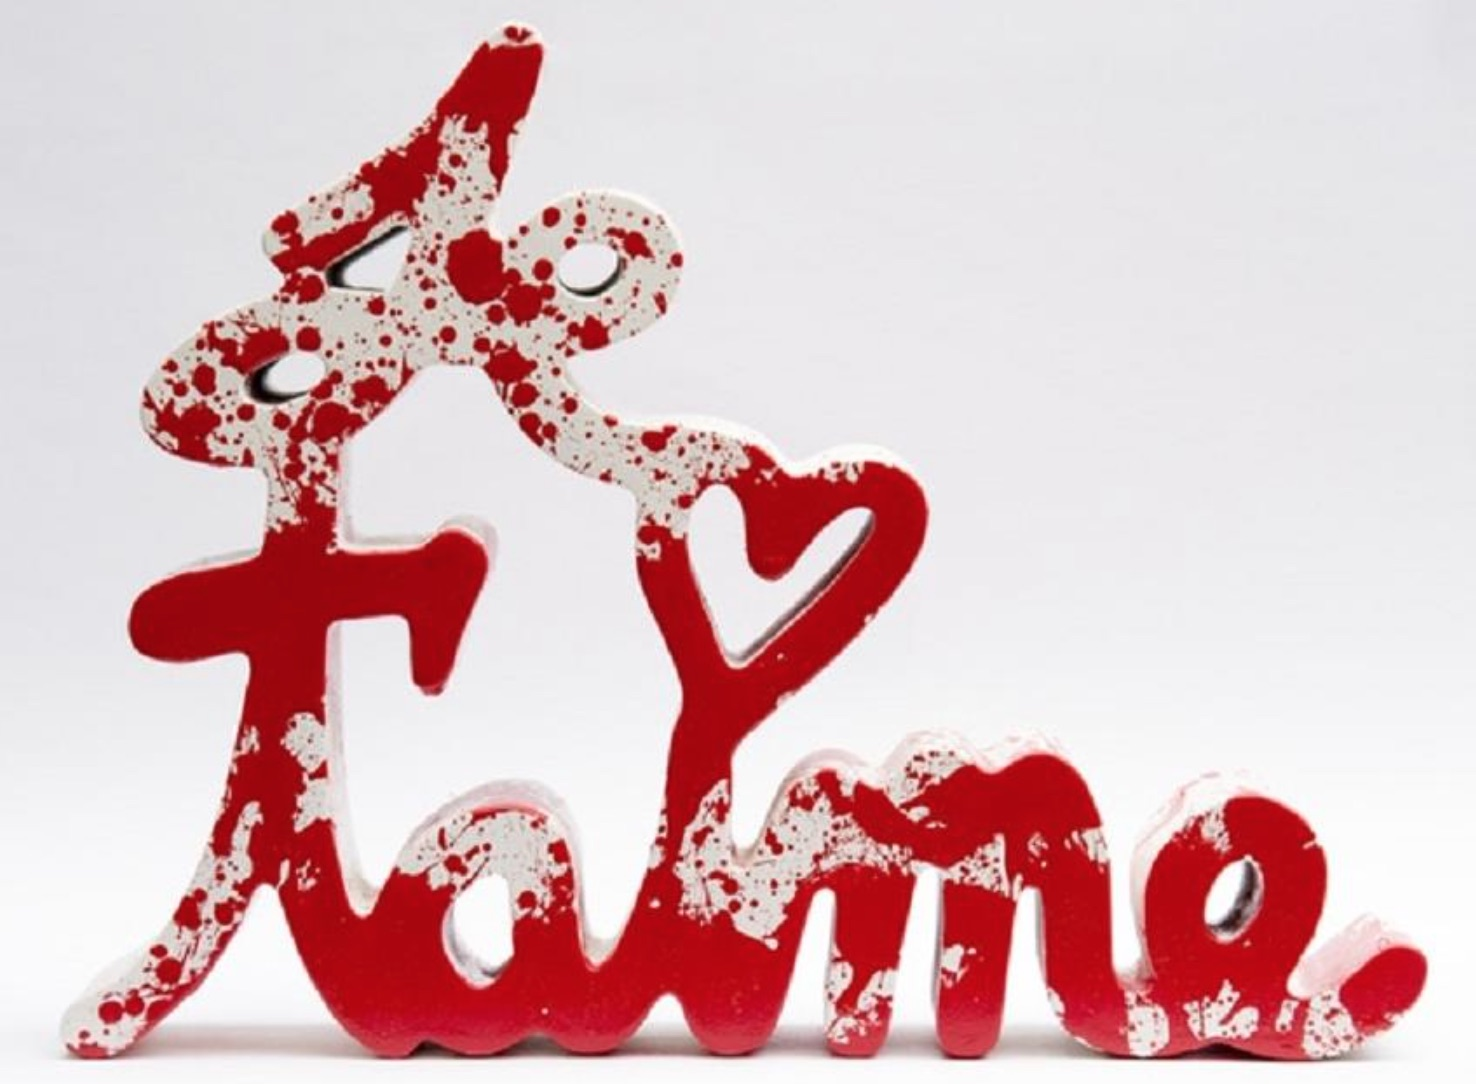 Je t'aime splash series by mr. brainwash